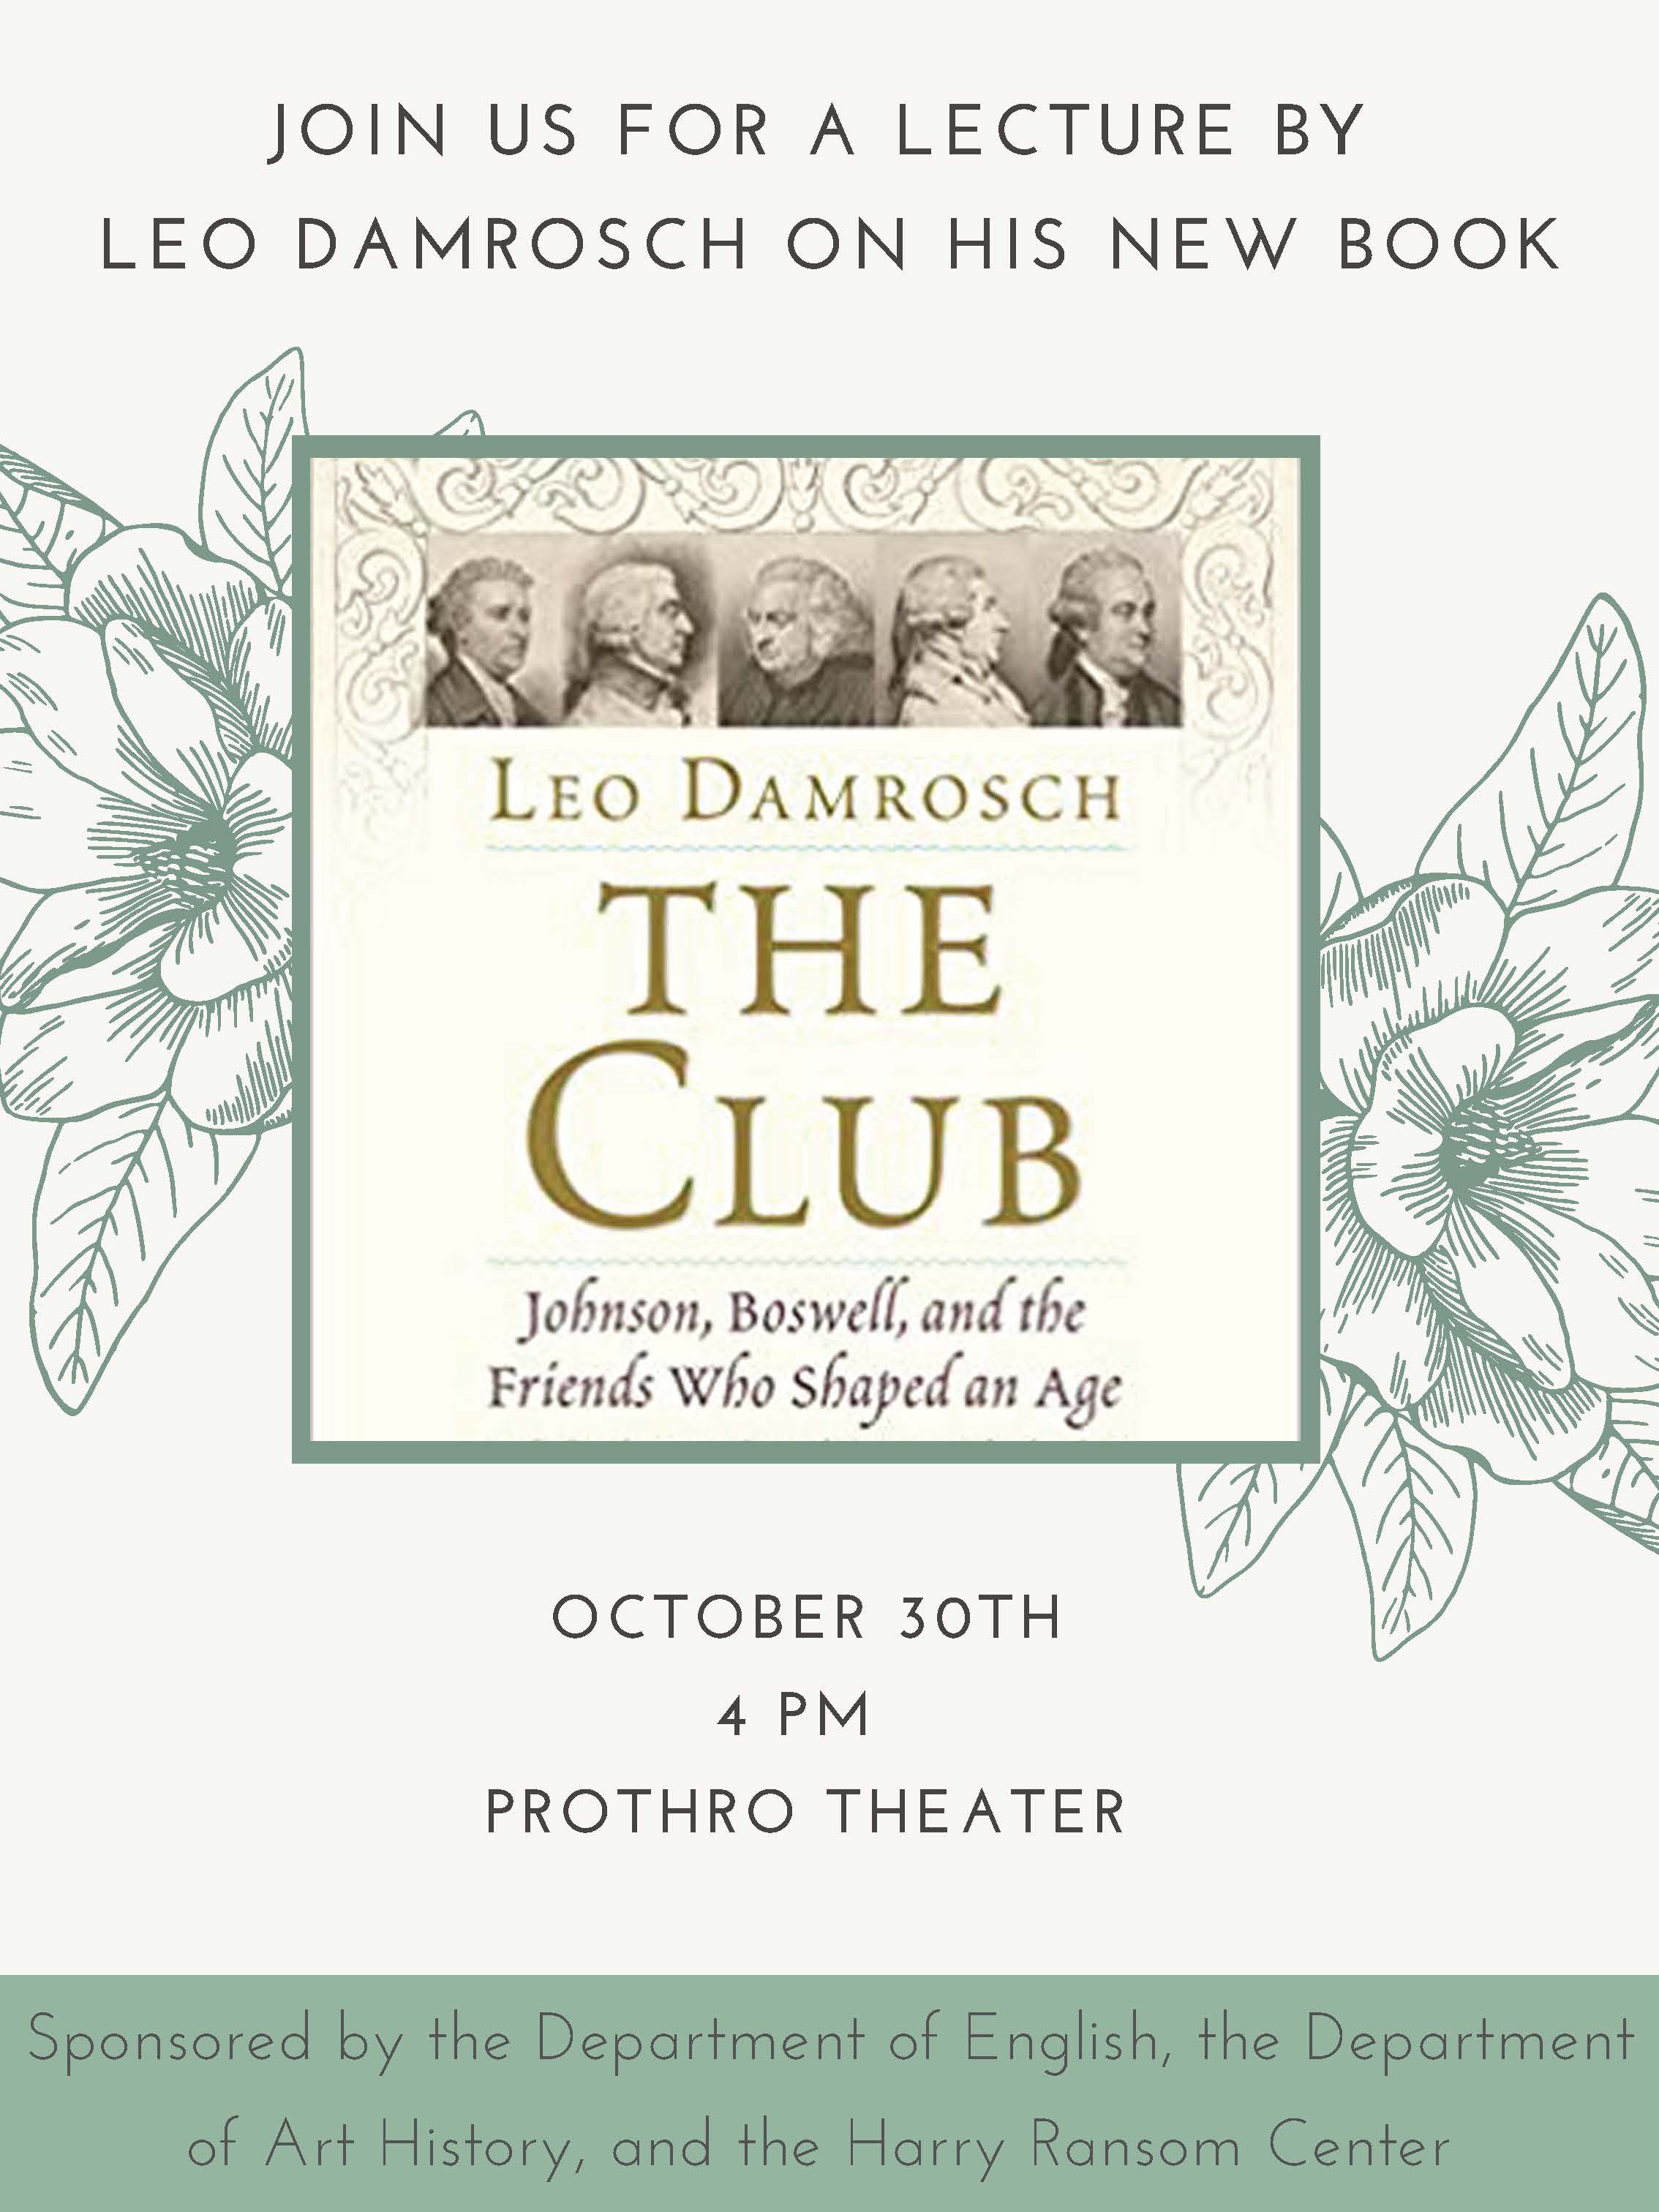 Leo Damrosch Lecture on The Club **TIME CHANGE